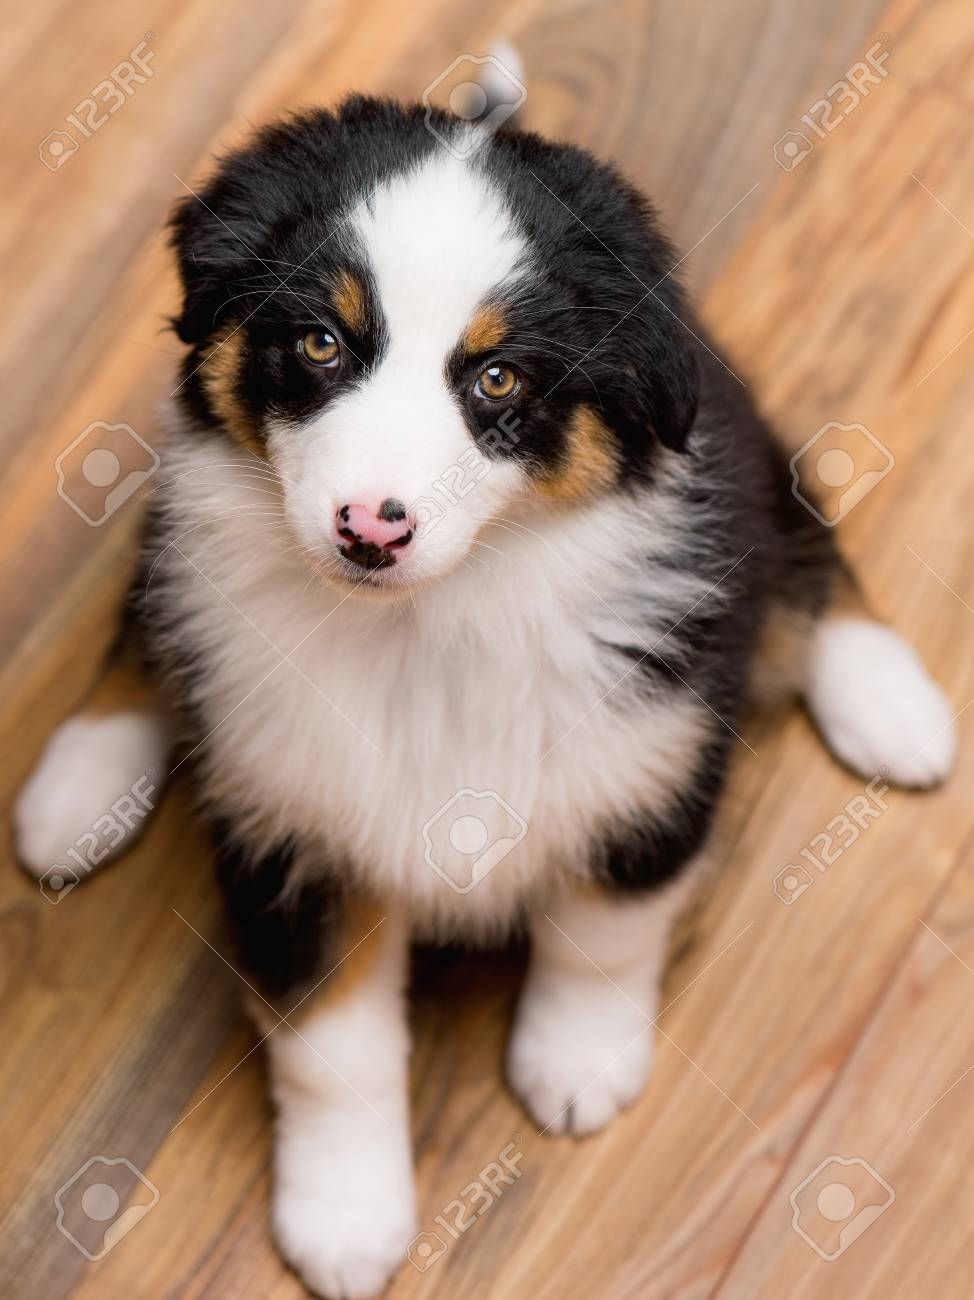 Australian Shepherd Purebred Puppy 2 Months Old Looking At Camera Stock Photo Picture And Royalty Free Image Image 99620586